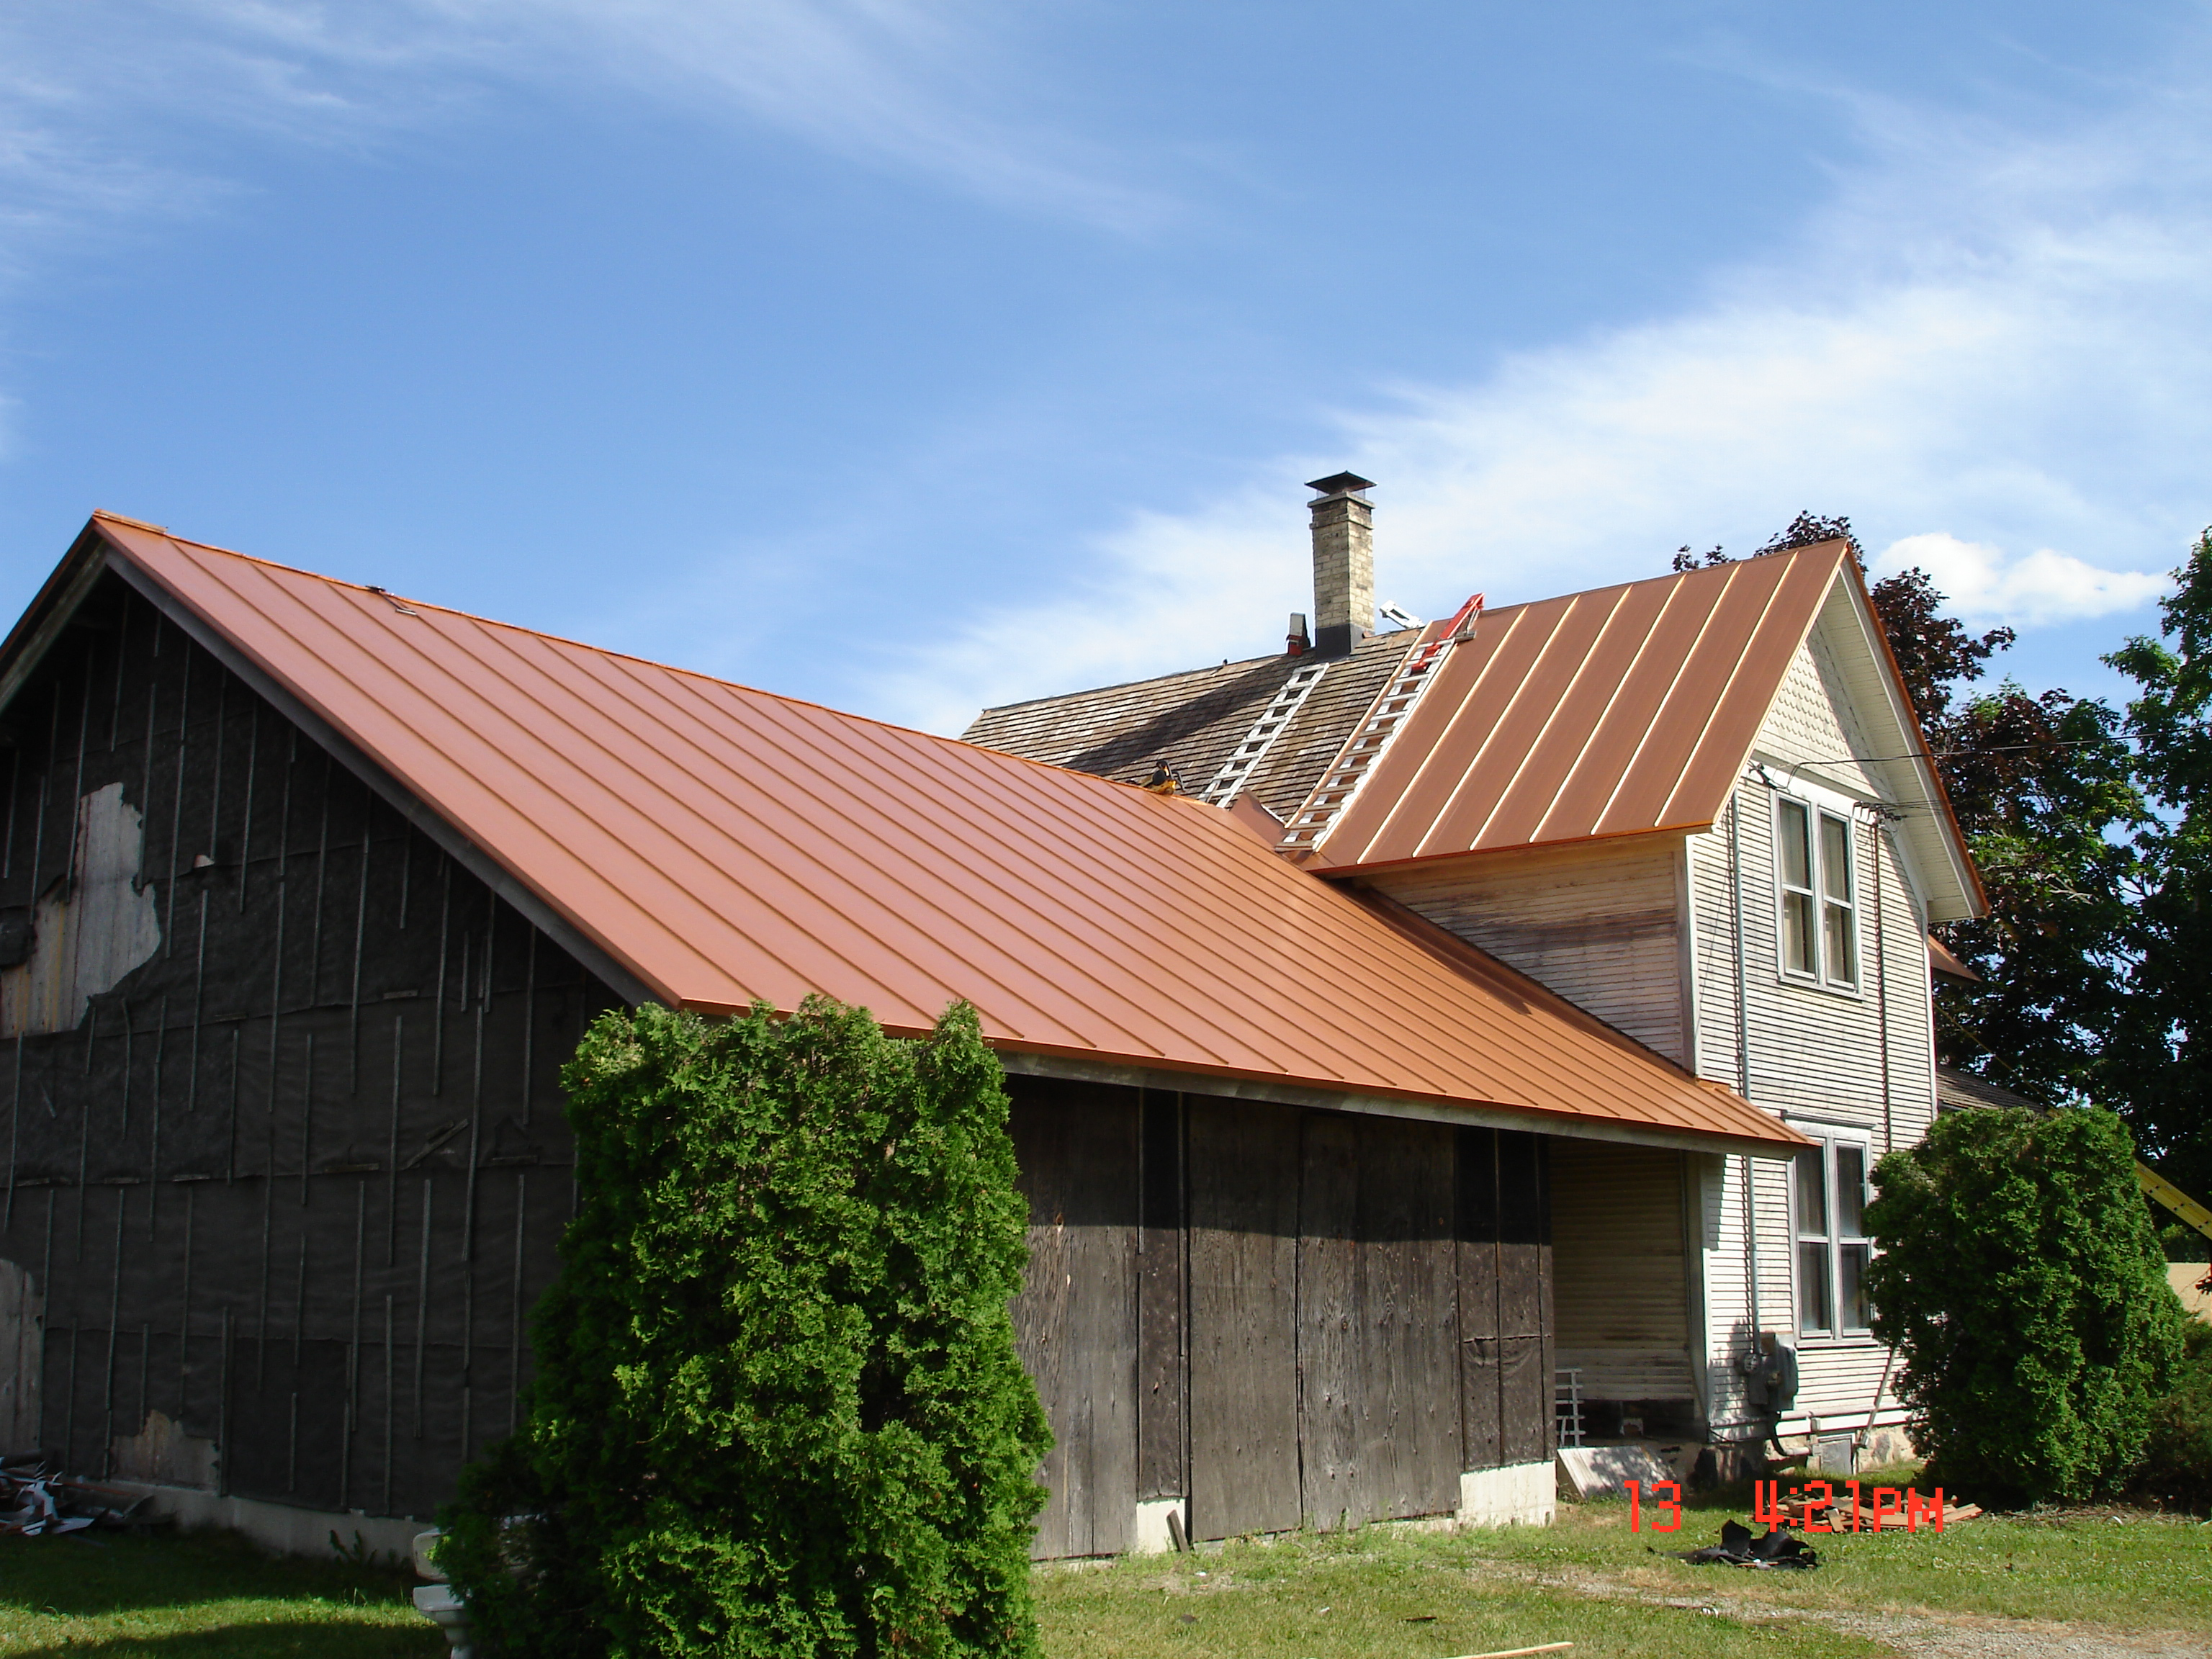 sheet Metal roofing standing seam house residential copper wisconsin iowa illinois minnesota north dakota